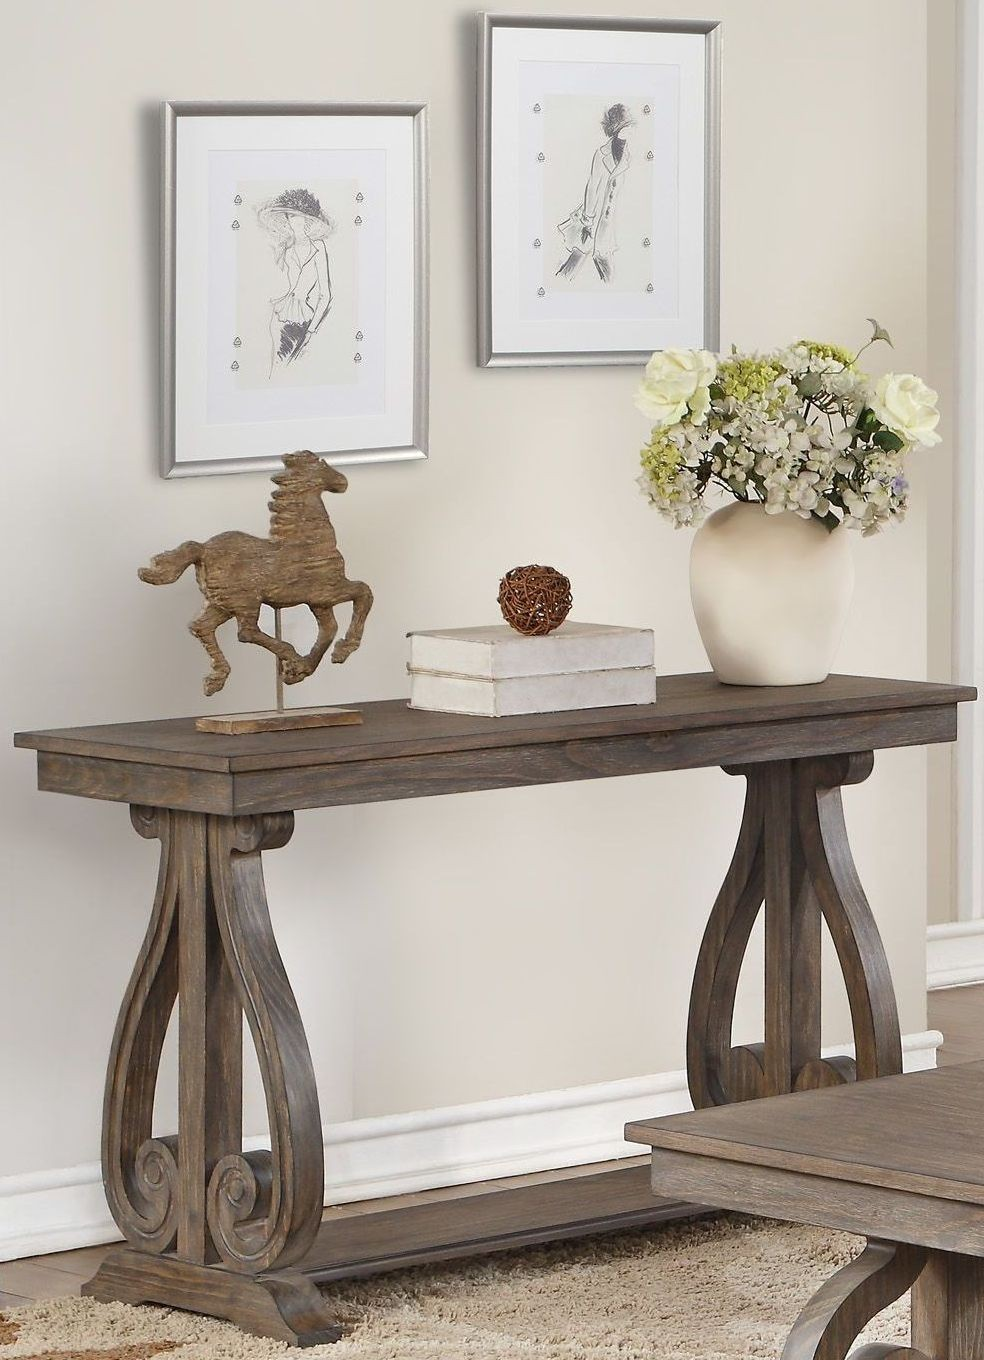 Toulon Unique Rustic Sofa Table From Homelegance